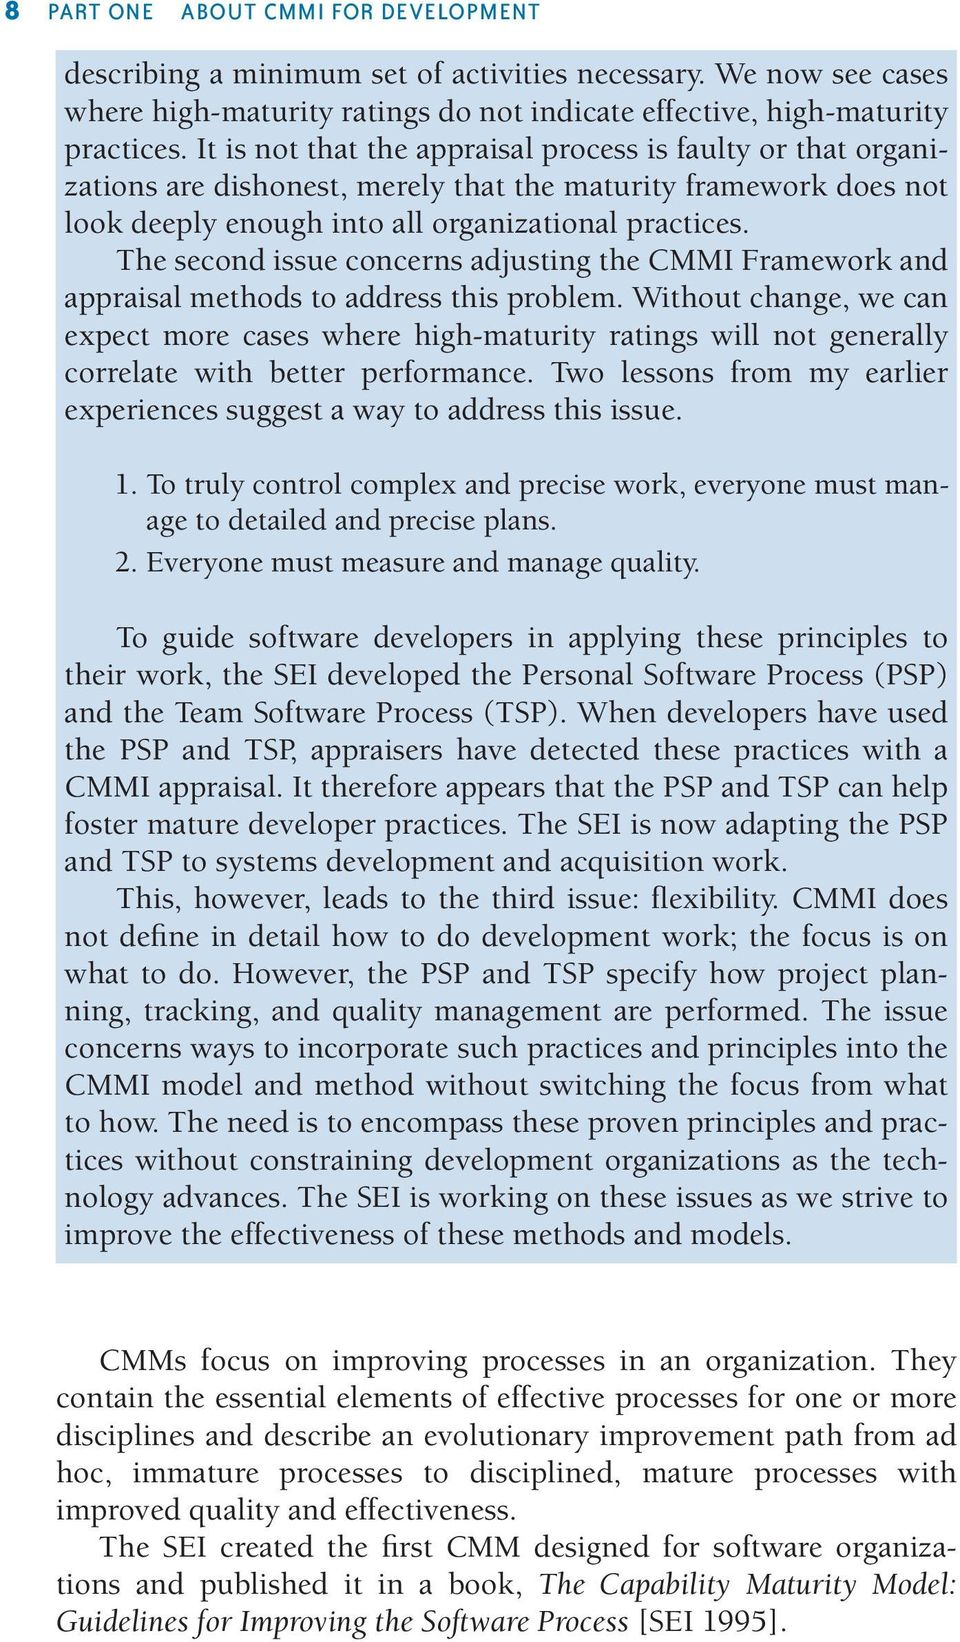 The second issue concerns adjusting the CMMI Framework and appraisal methods to address this problem.